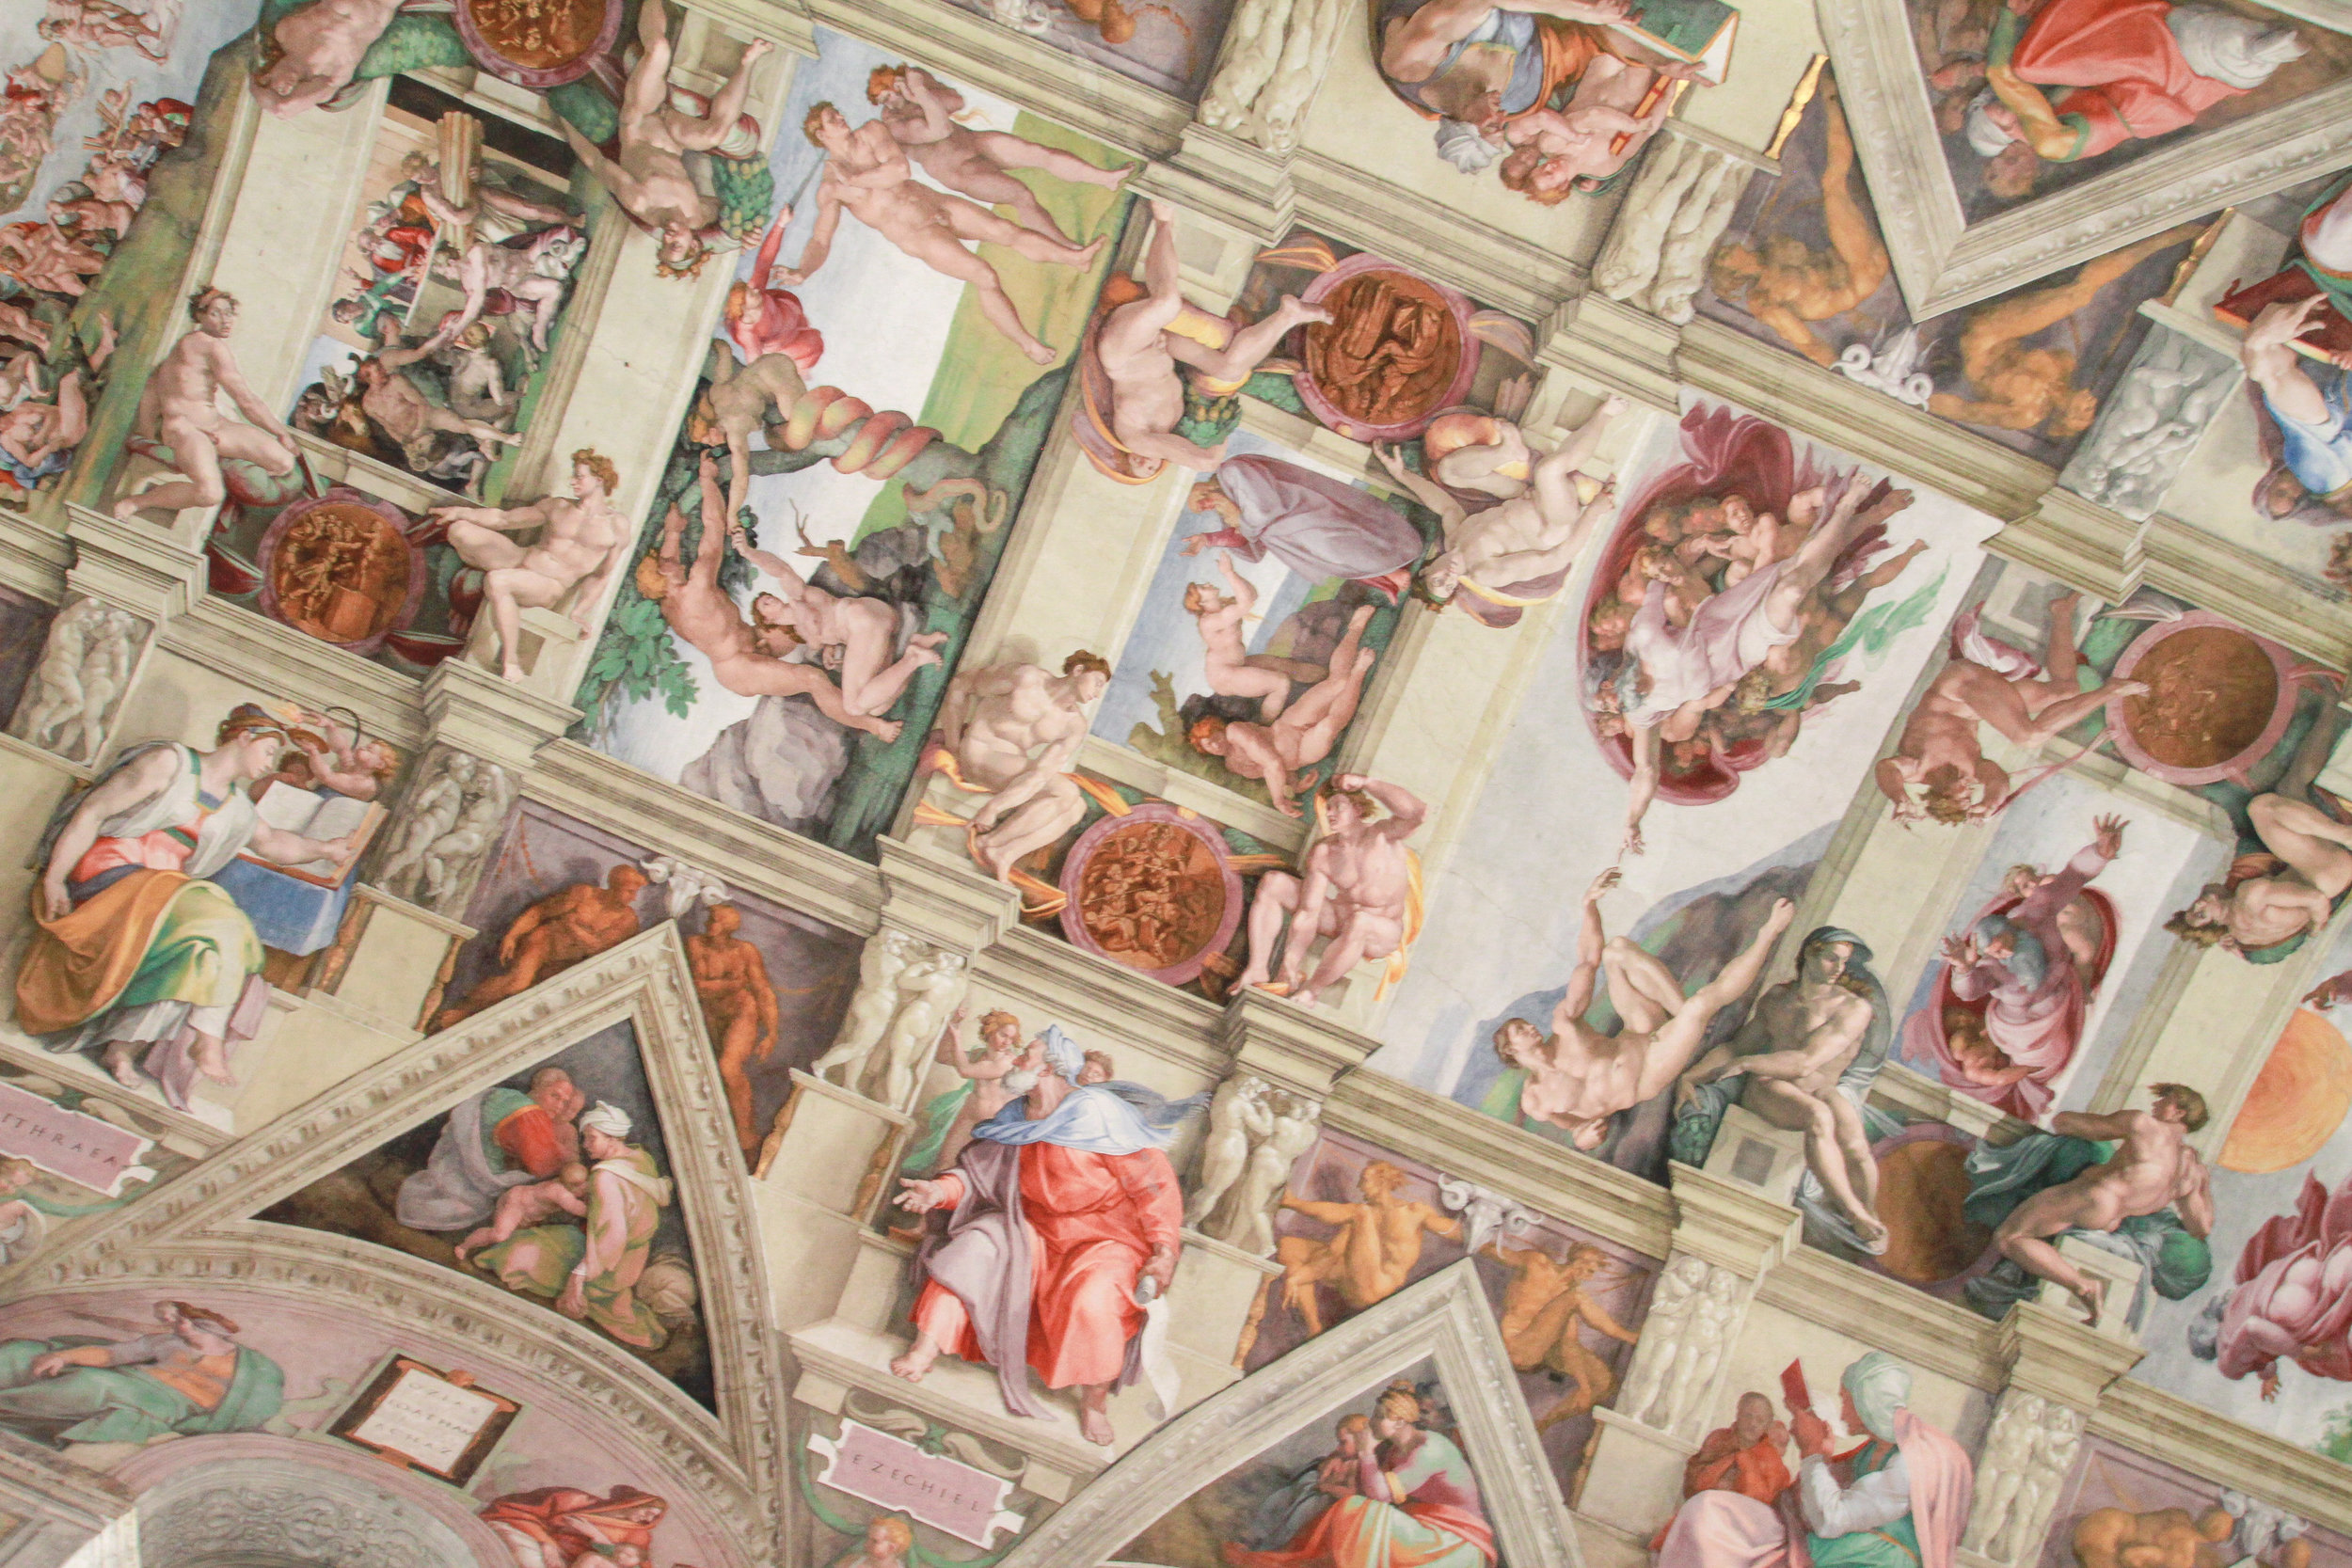 Michelangelo and the Sistine Chapel - To buy tickets, visit the box office: